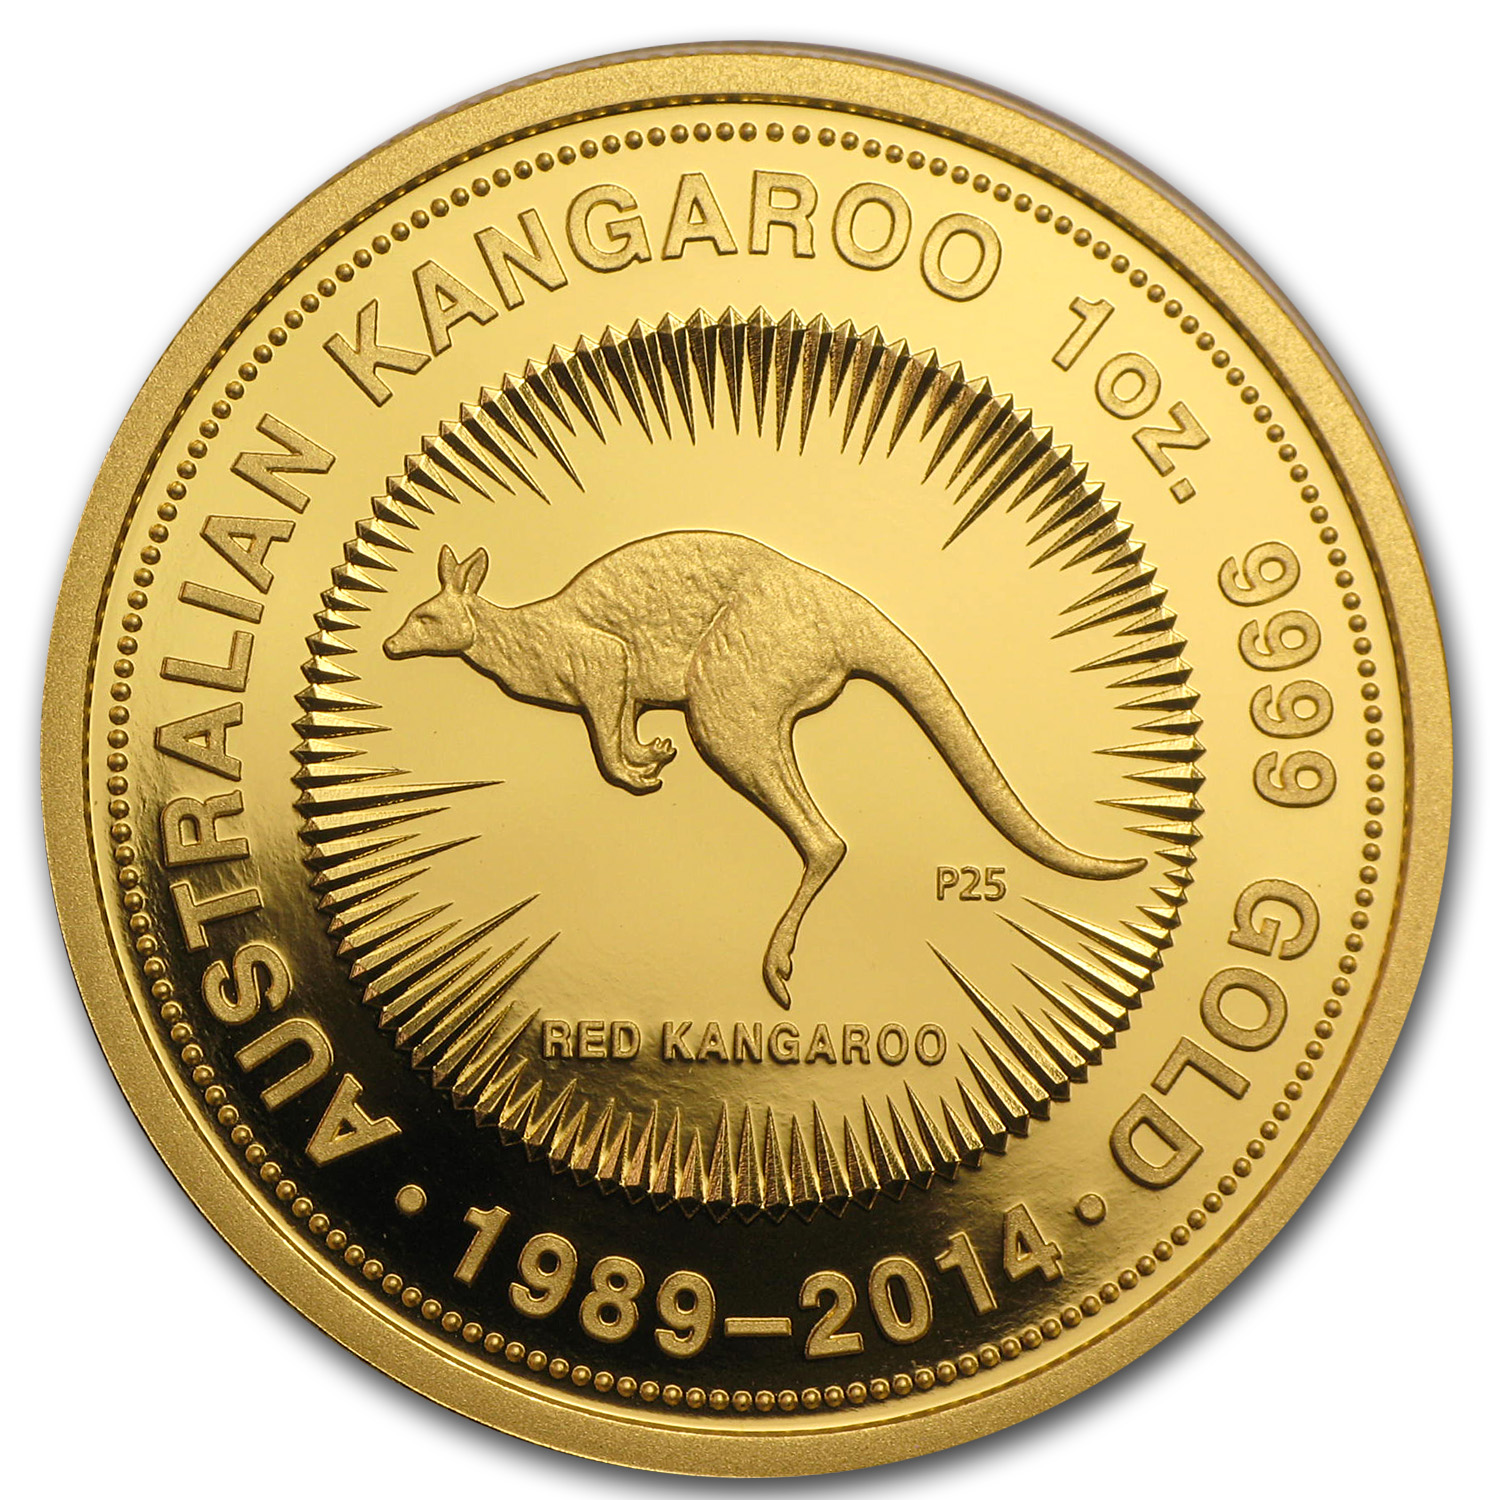 2014 1 oz Australian Proof Gold Kangaroo (25th Anniversary)